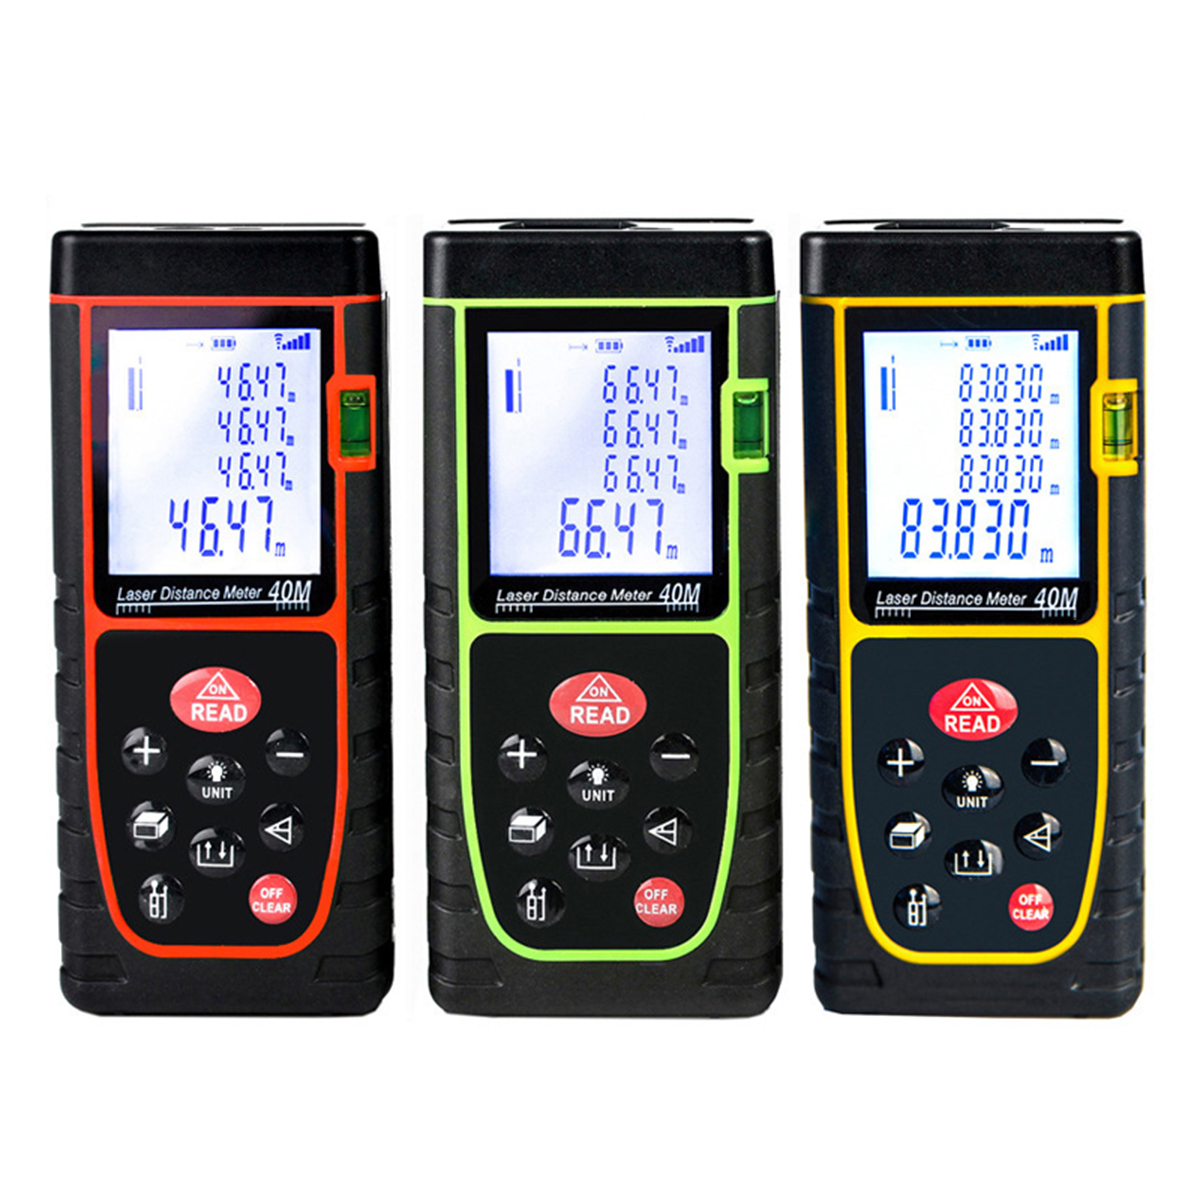 Portable Handheld Digital Laser Point Distance Meter Range Finder Measure Tape One Button Operation High Accuracy